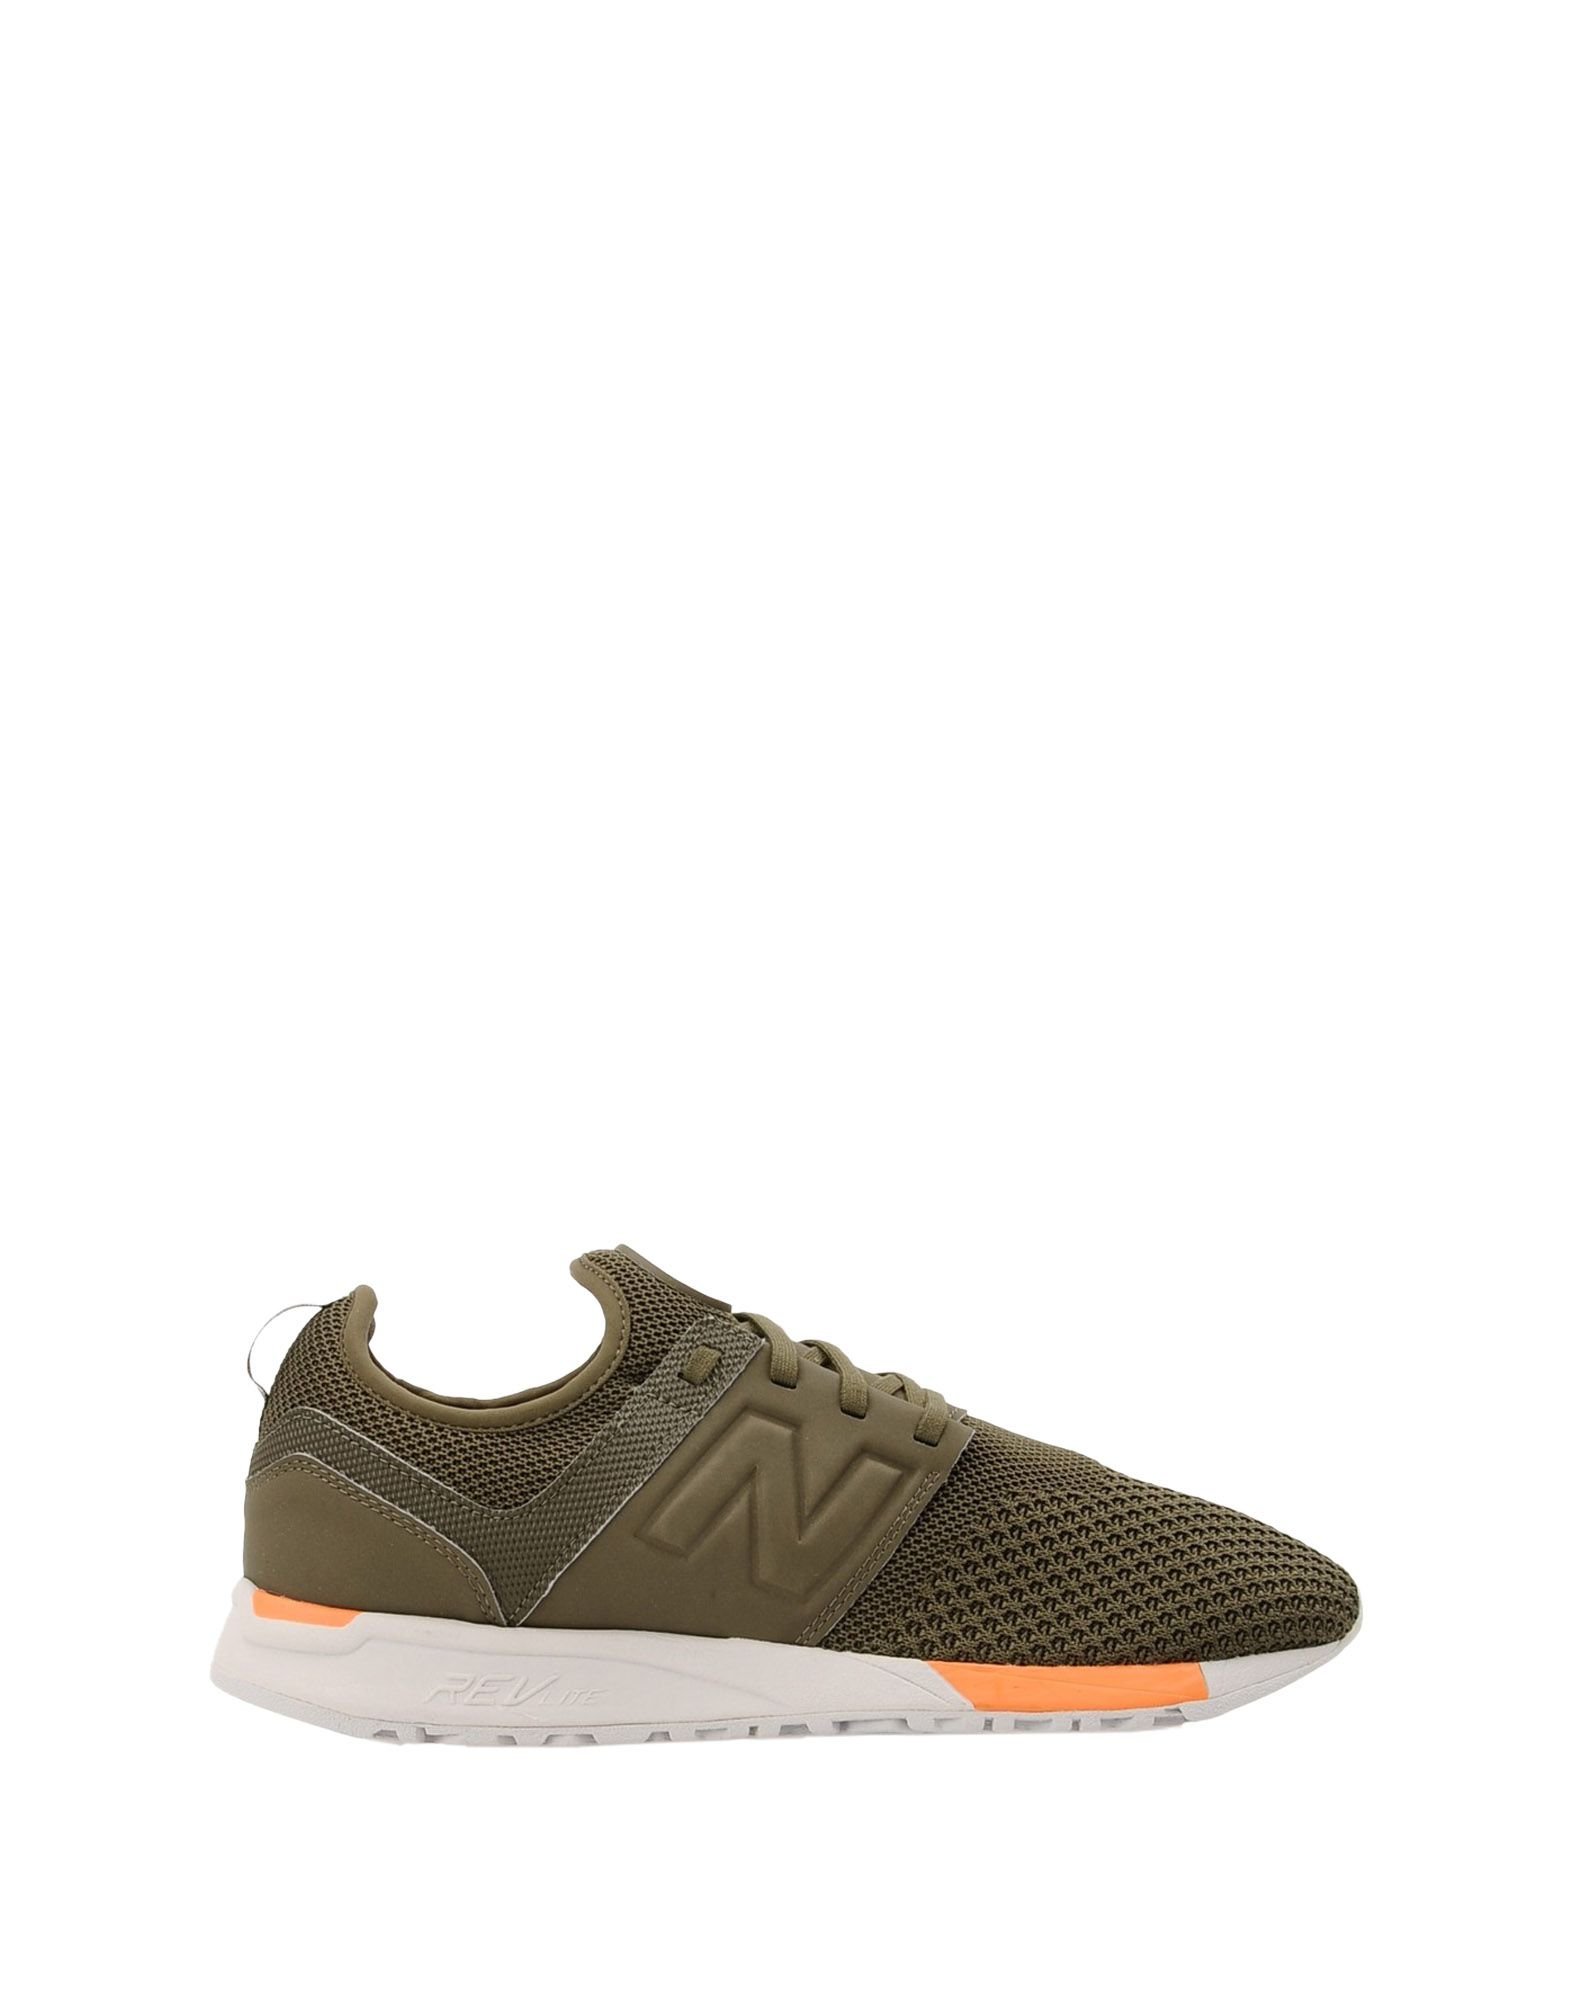 Sneakers New Balance 247 Techy Winter Mesh - Homme - Sneakers New Balance sur